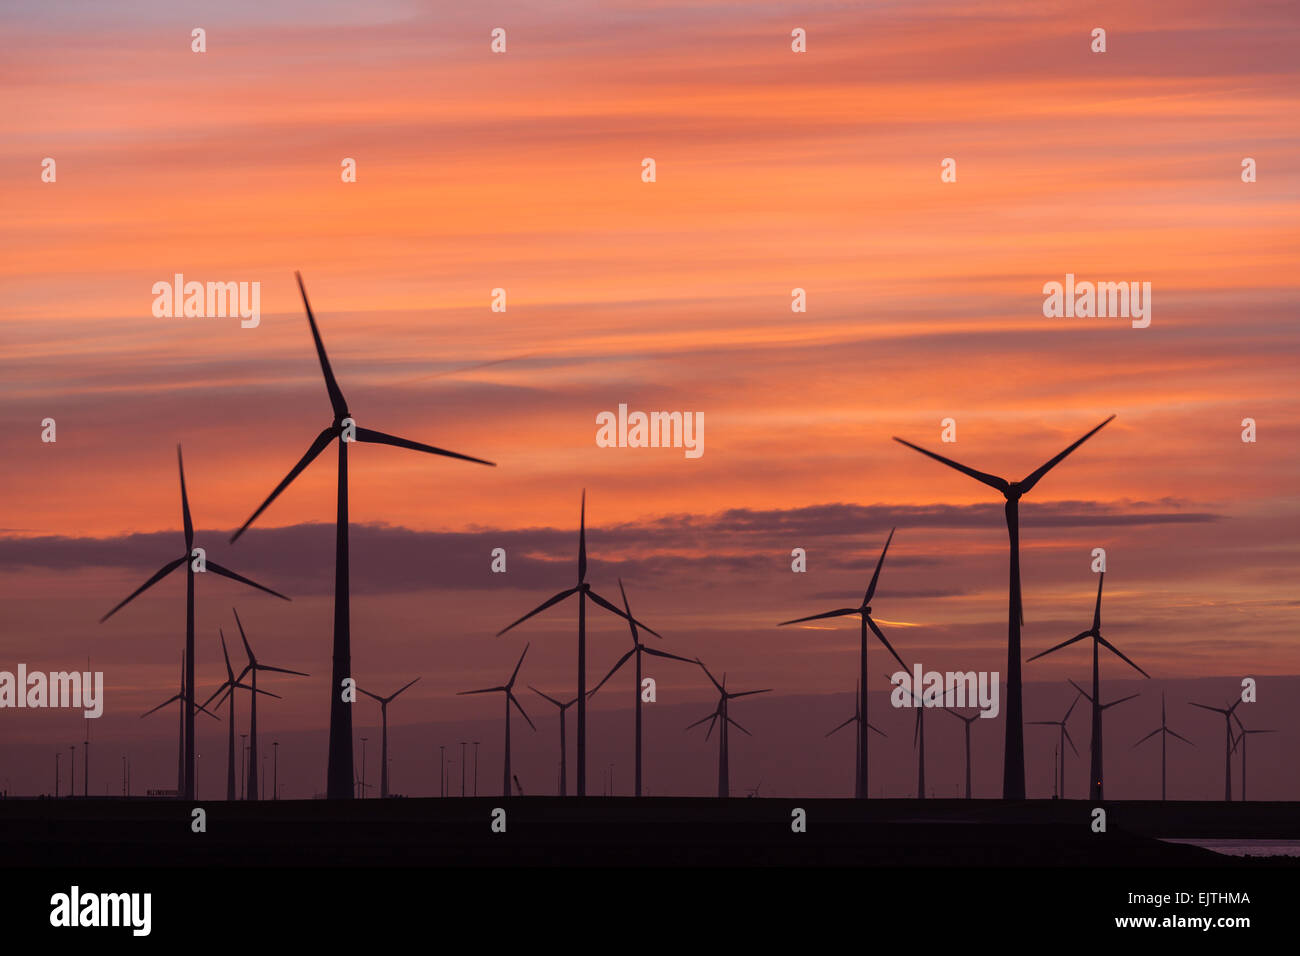 Wind turbines turning at dusk in Eemshaven, Netherlands - Stock Image